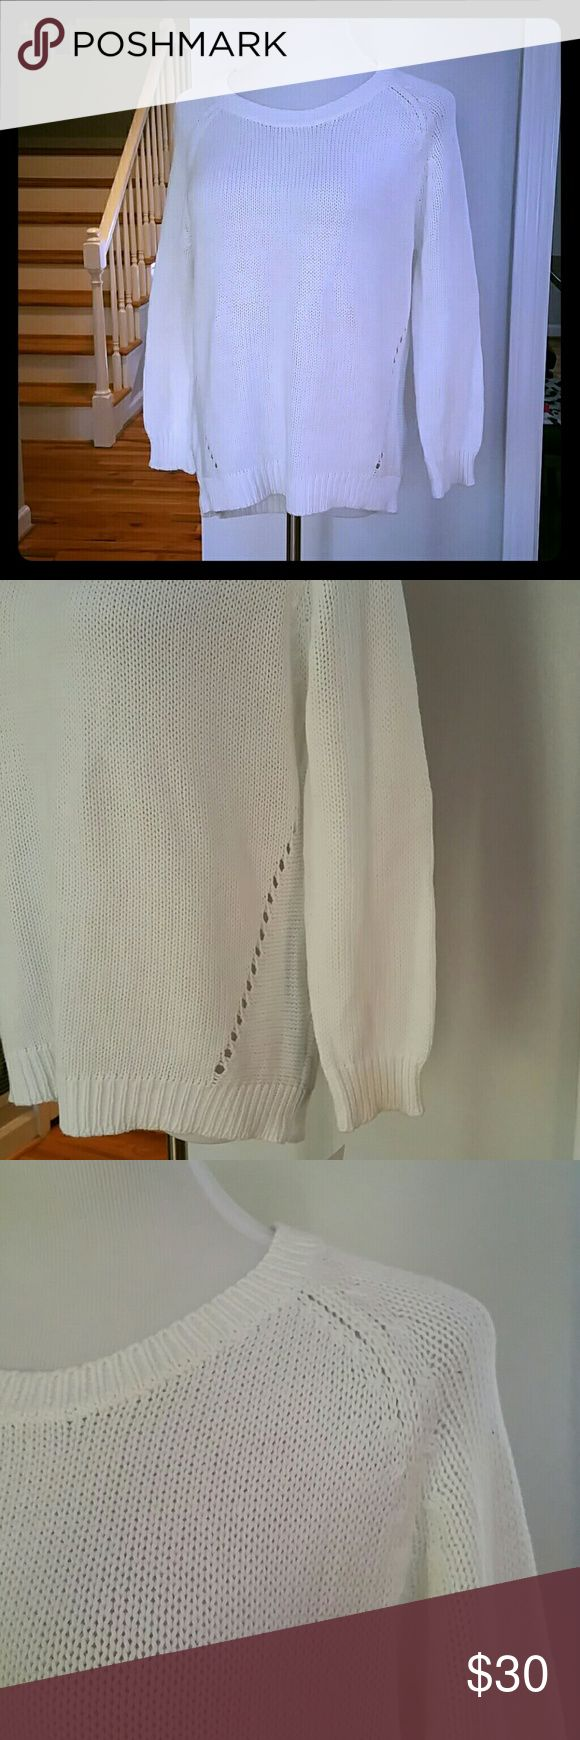 NWT NY COLLECTION SWEATER NWT NY Collection Raglan-Sleeve Sweater  Size : Medium  Materials : 100% COTTON NY Collection Sweaters